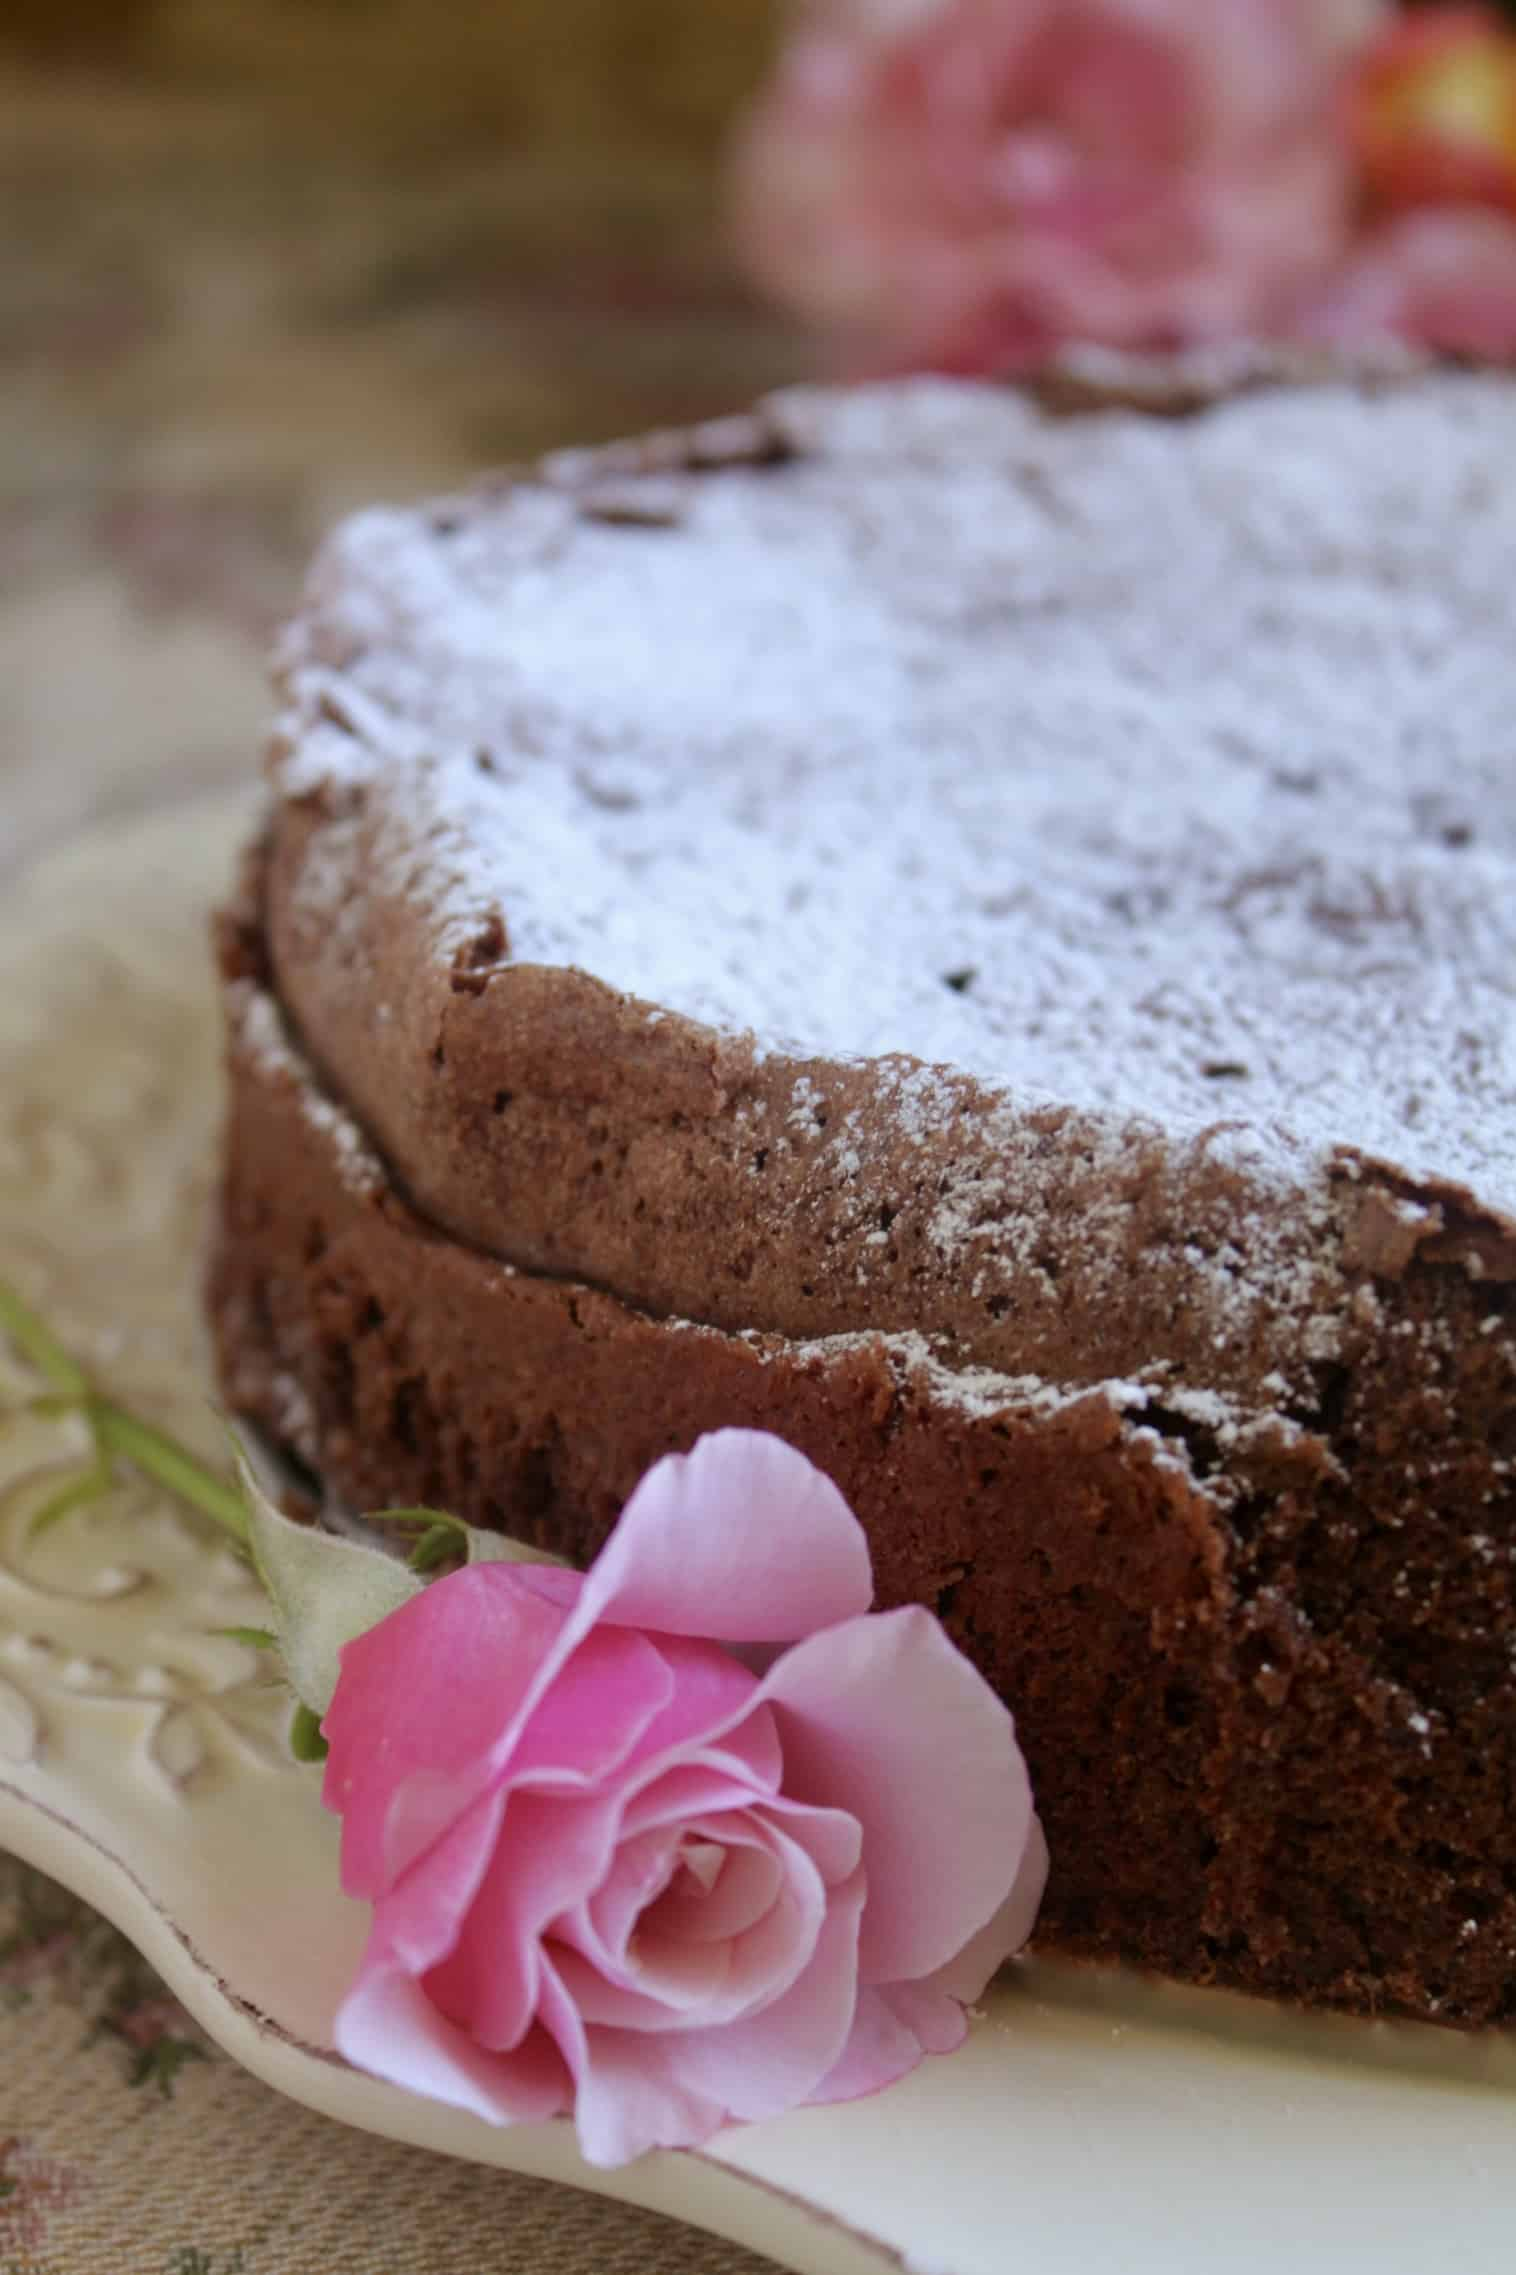 chocolate torte with pink rose